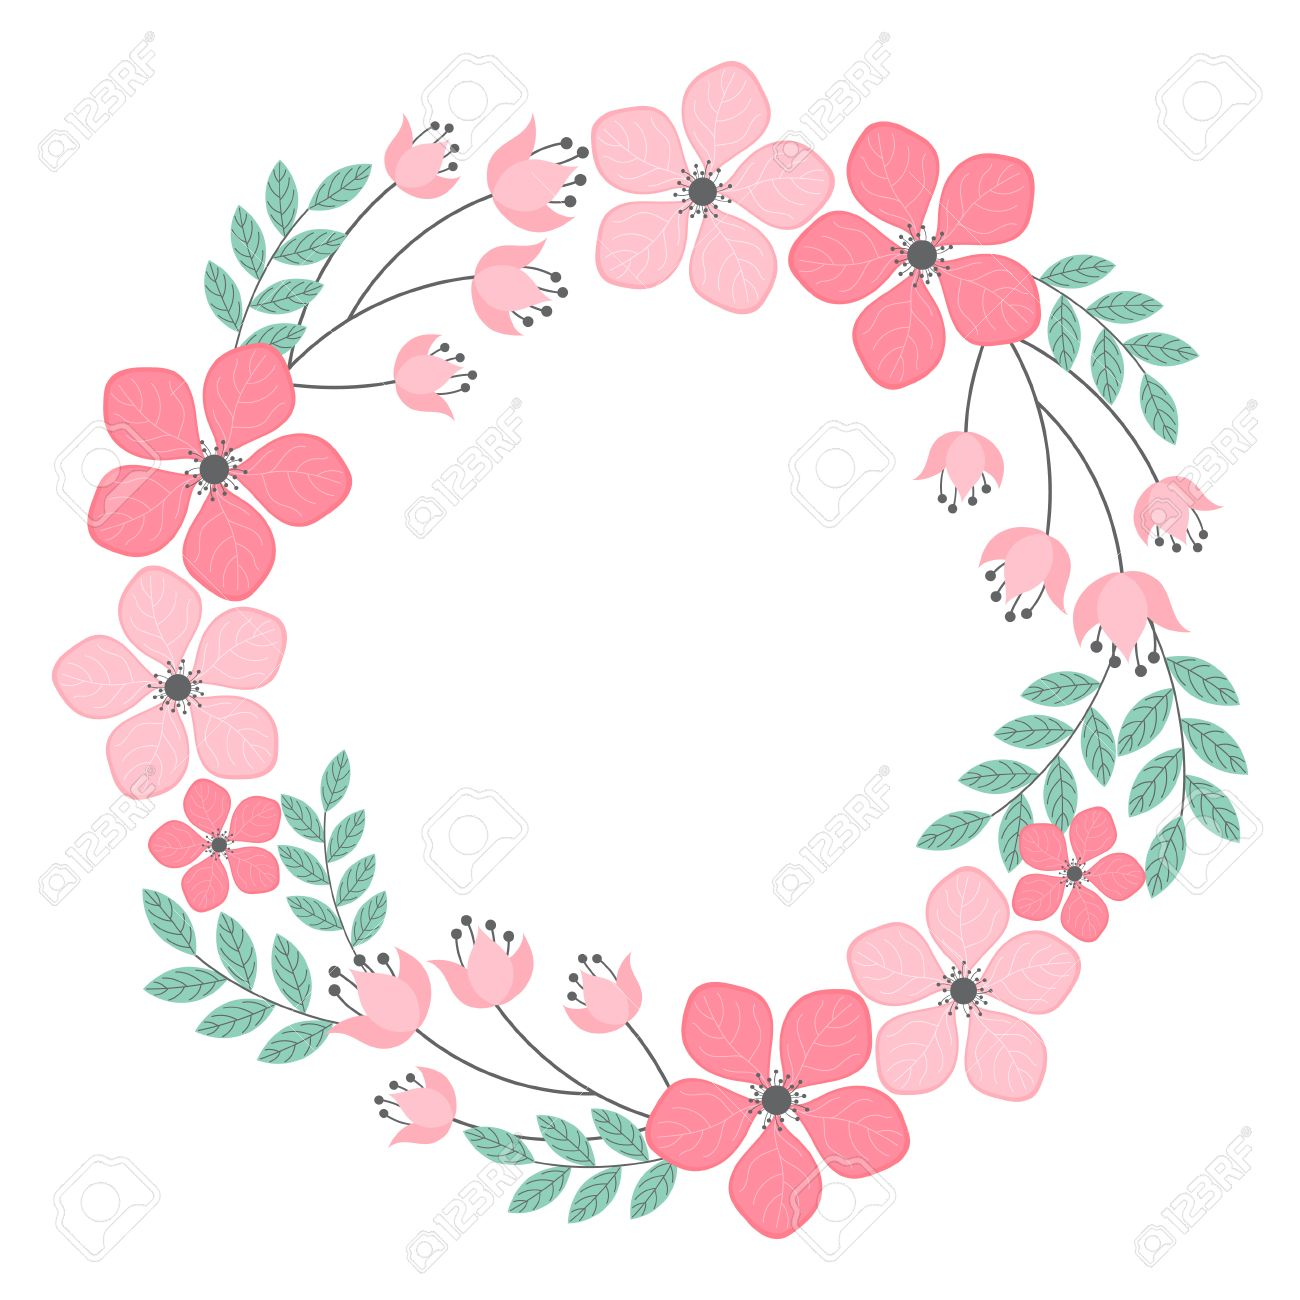 Vector Pastel Pink And Mint Floral Wreath Royalty Free Cliparts